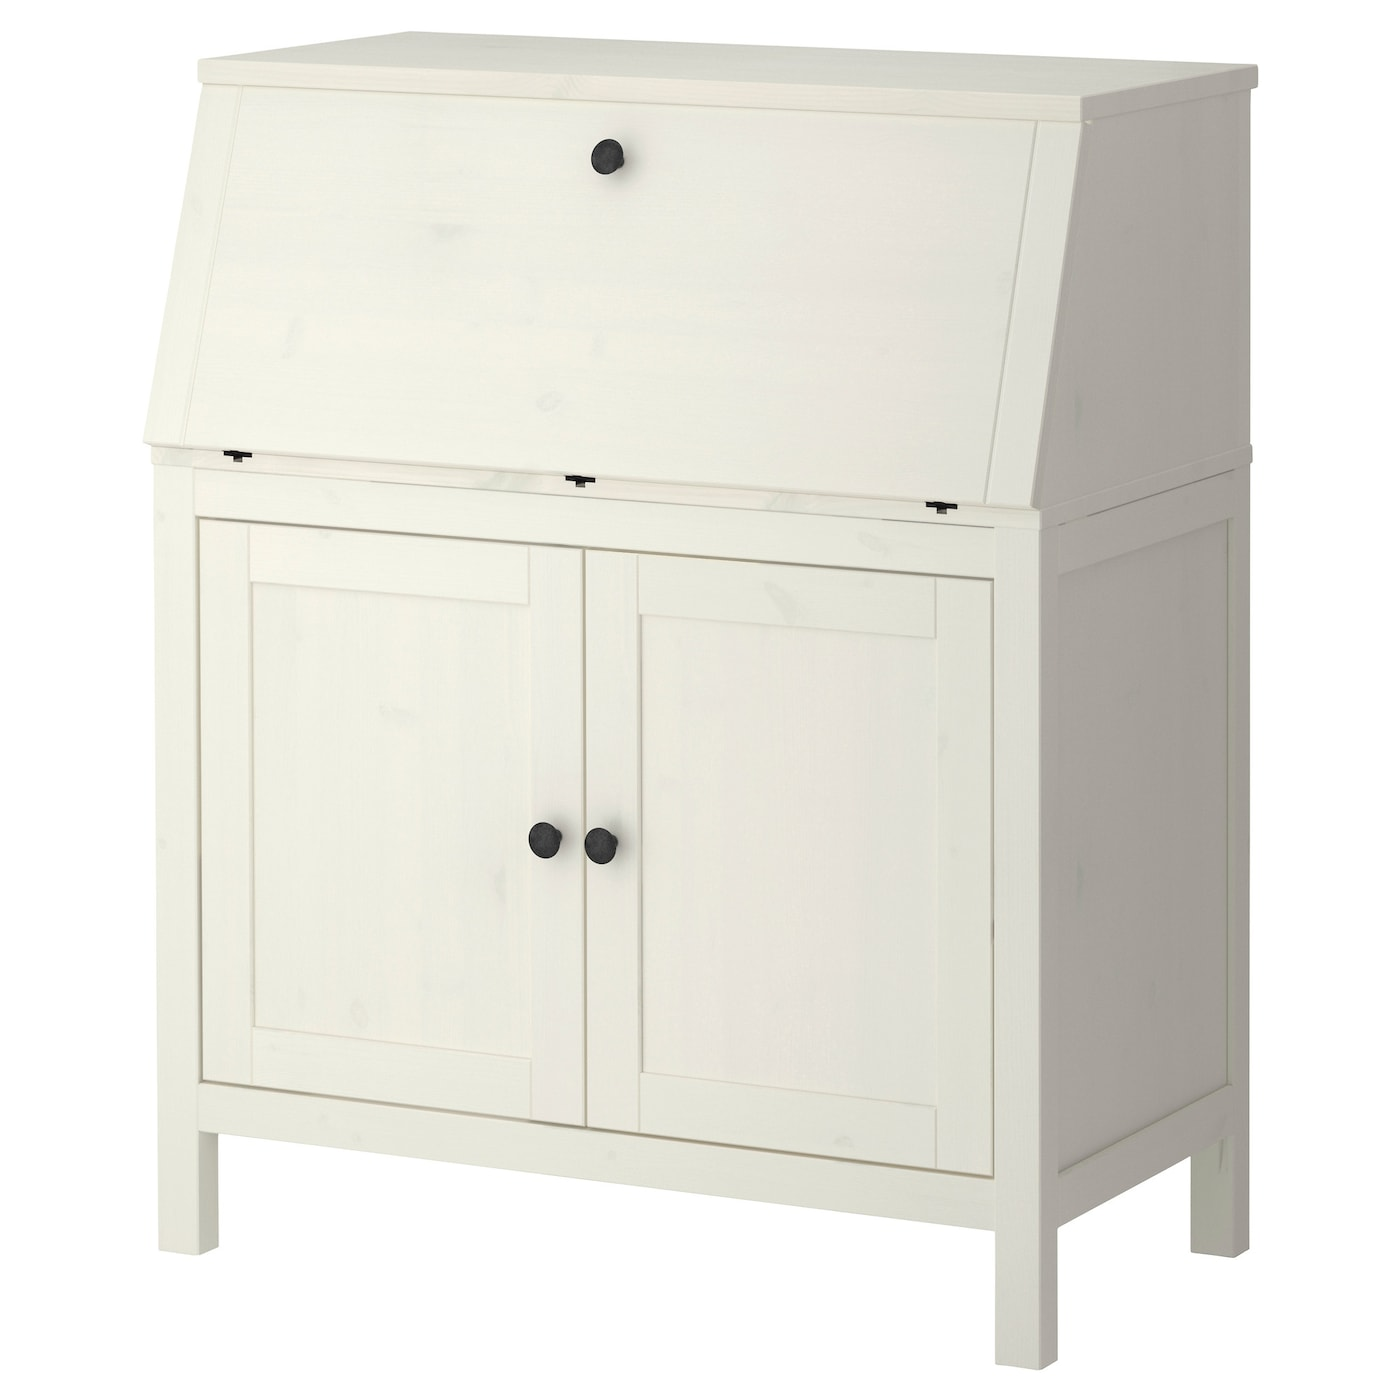 hemnes bureau white stain 89x108 cm ikea. Black Bedroom Furniture Sets. Home Design Ideas